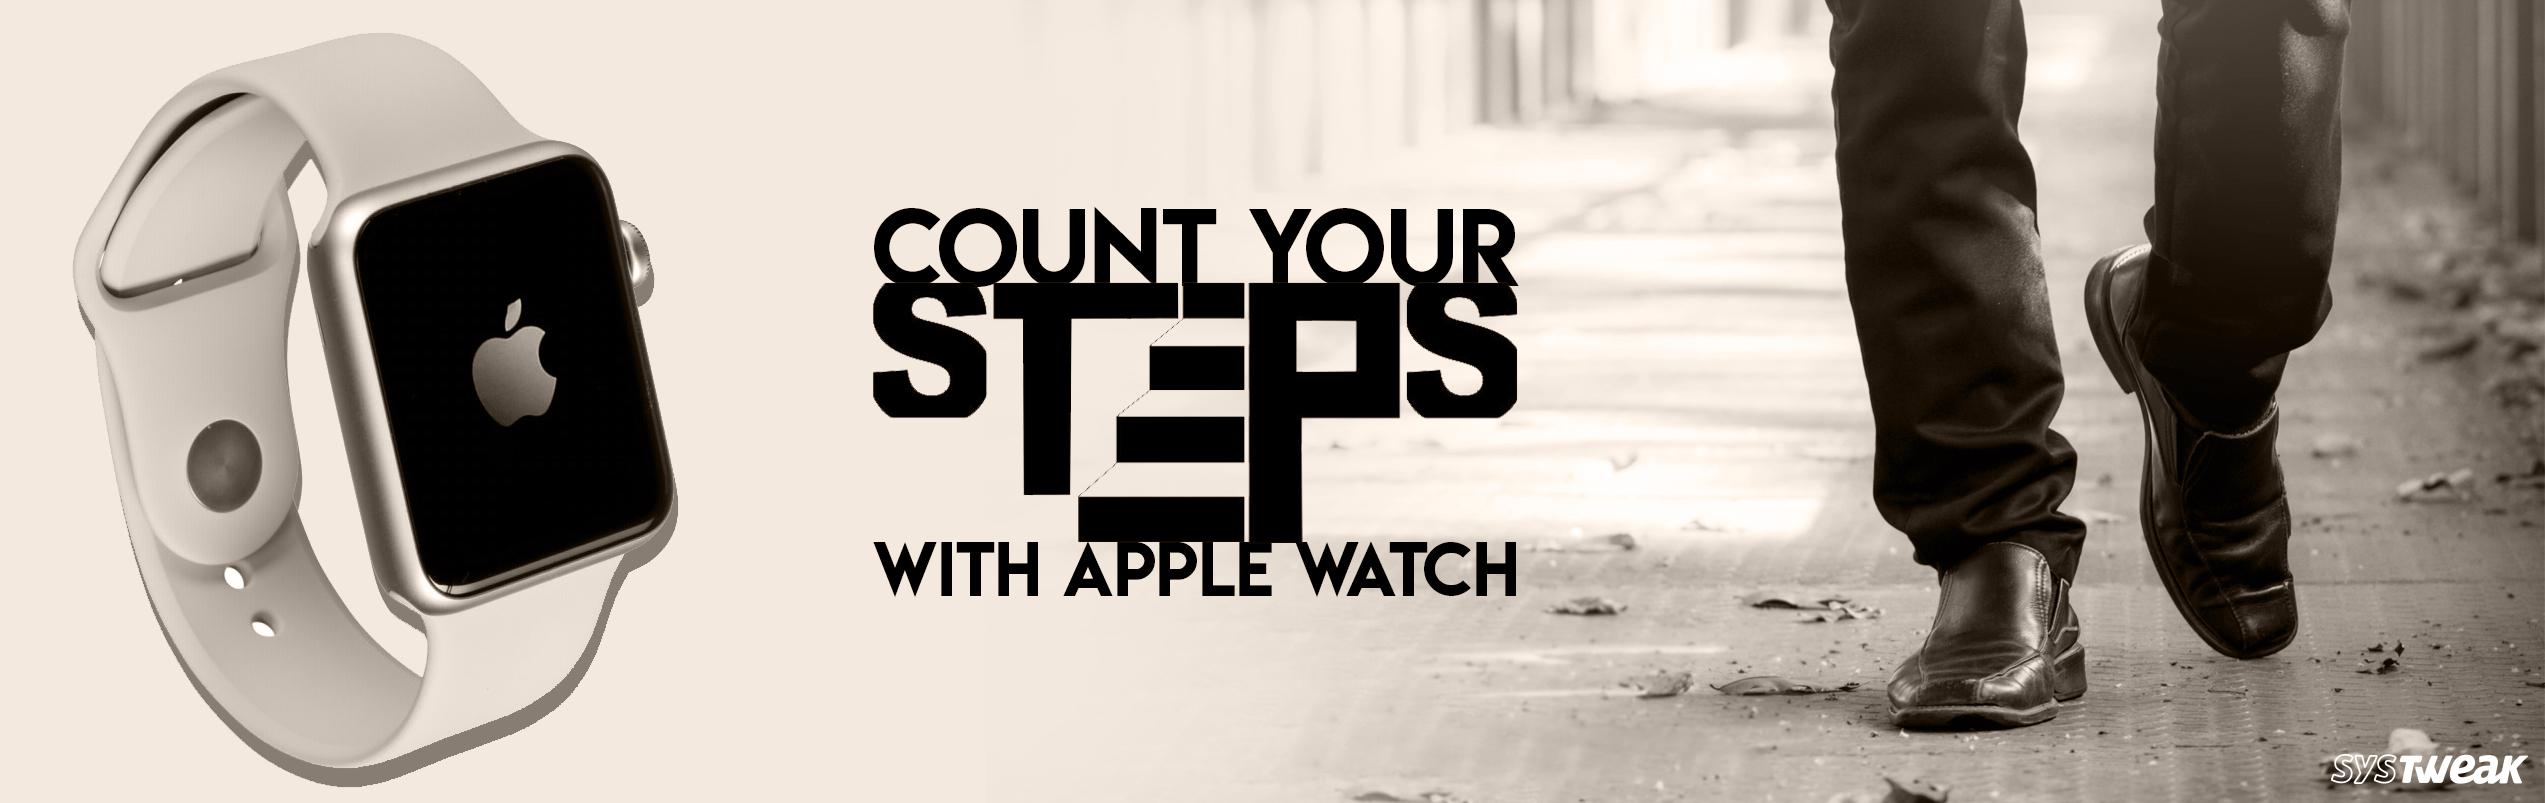 How to Set Your Apple Watch to Count Your Steps